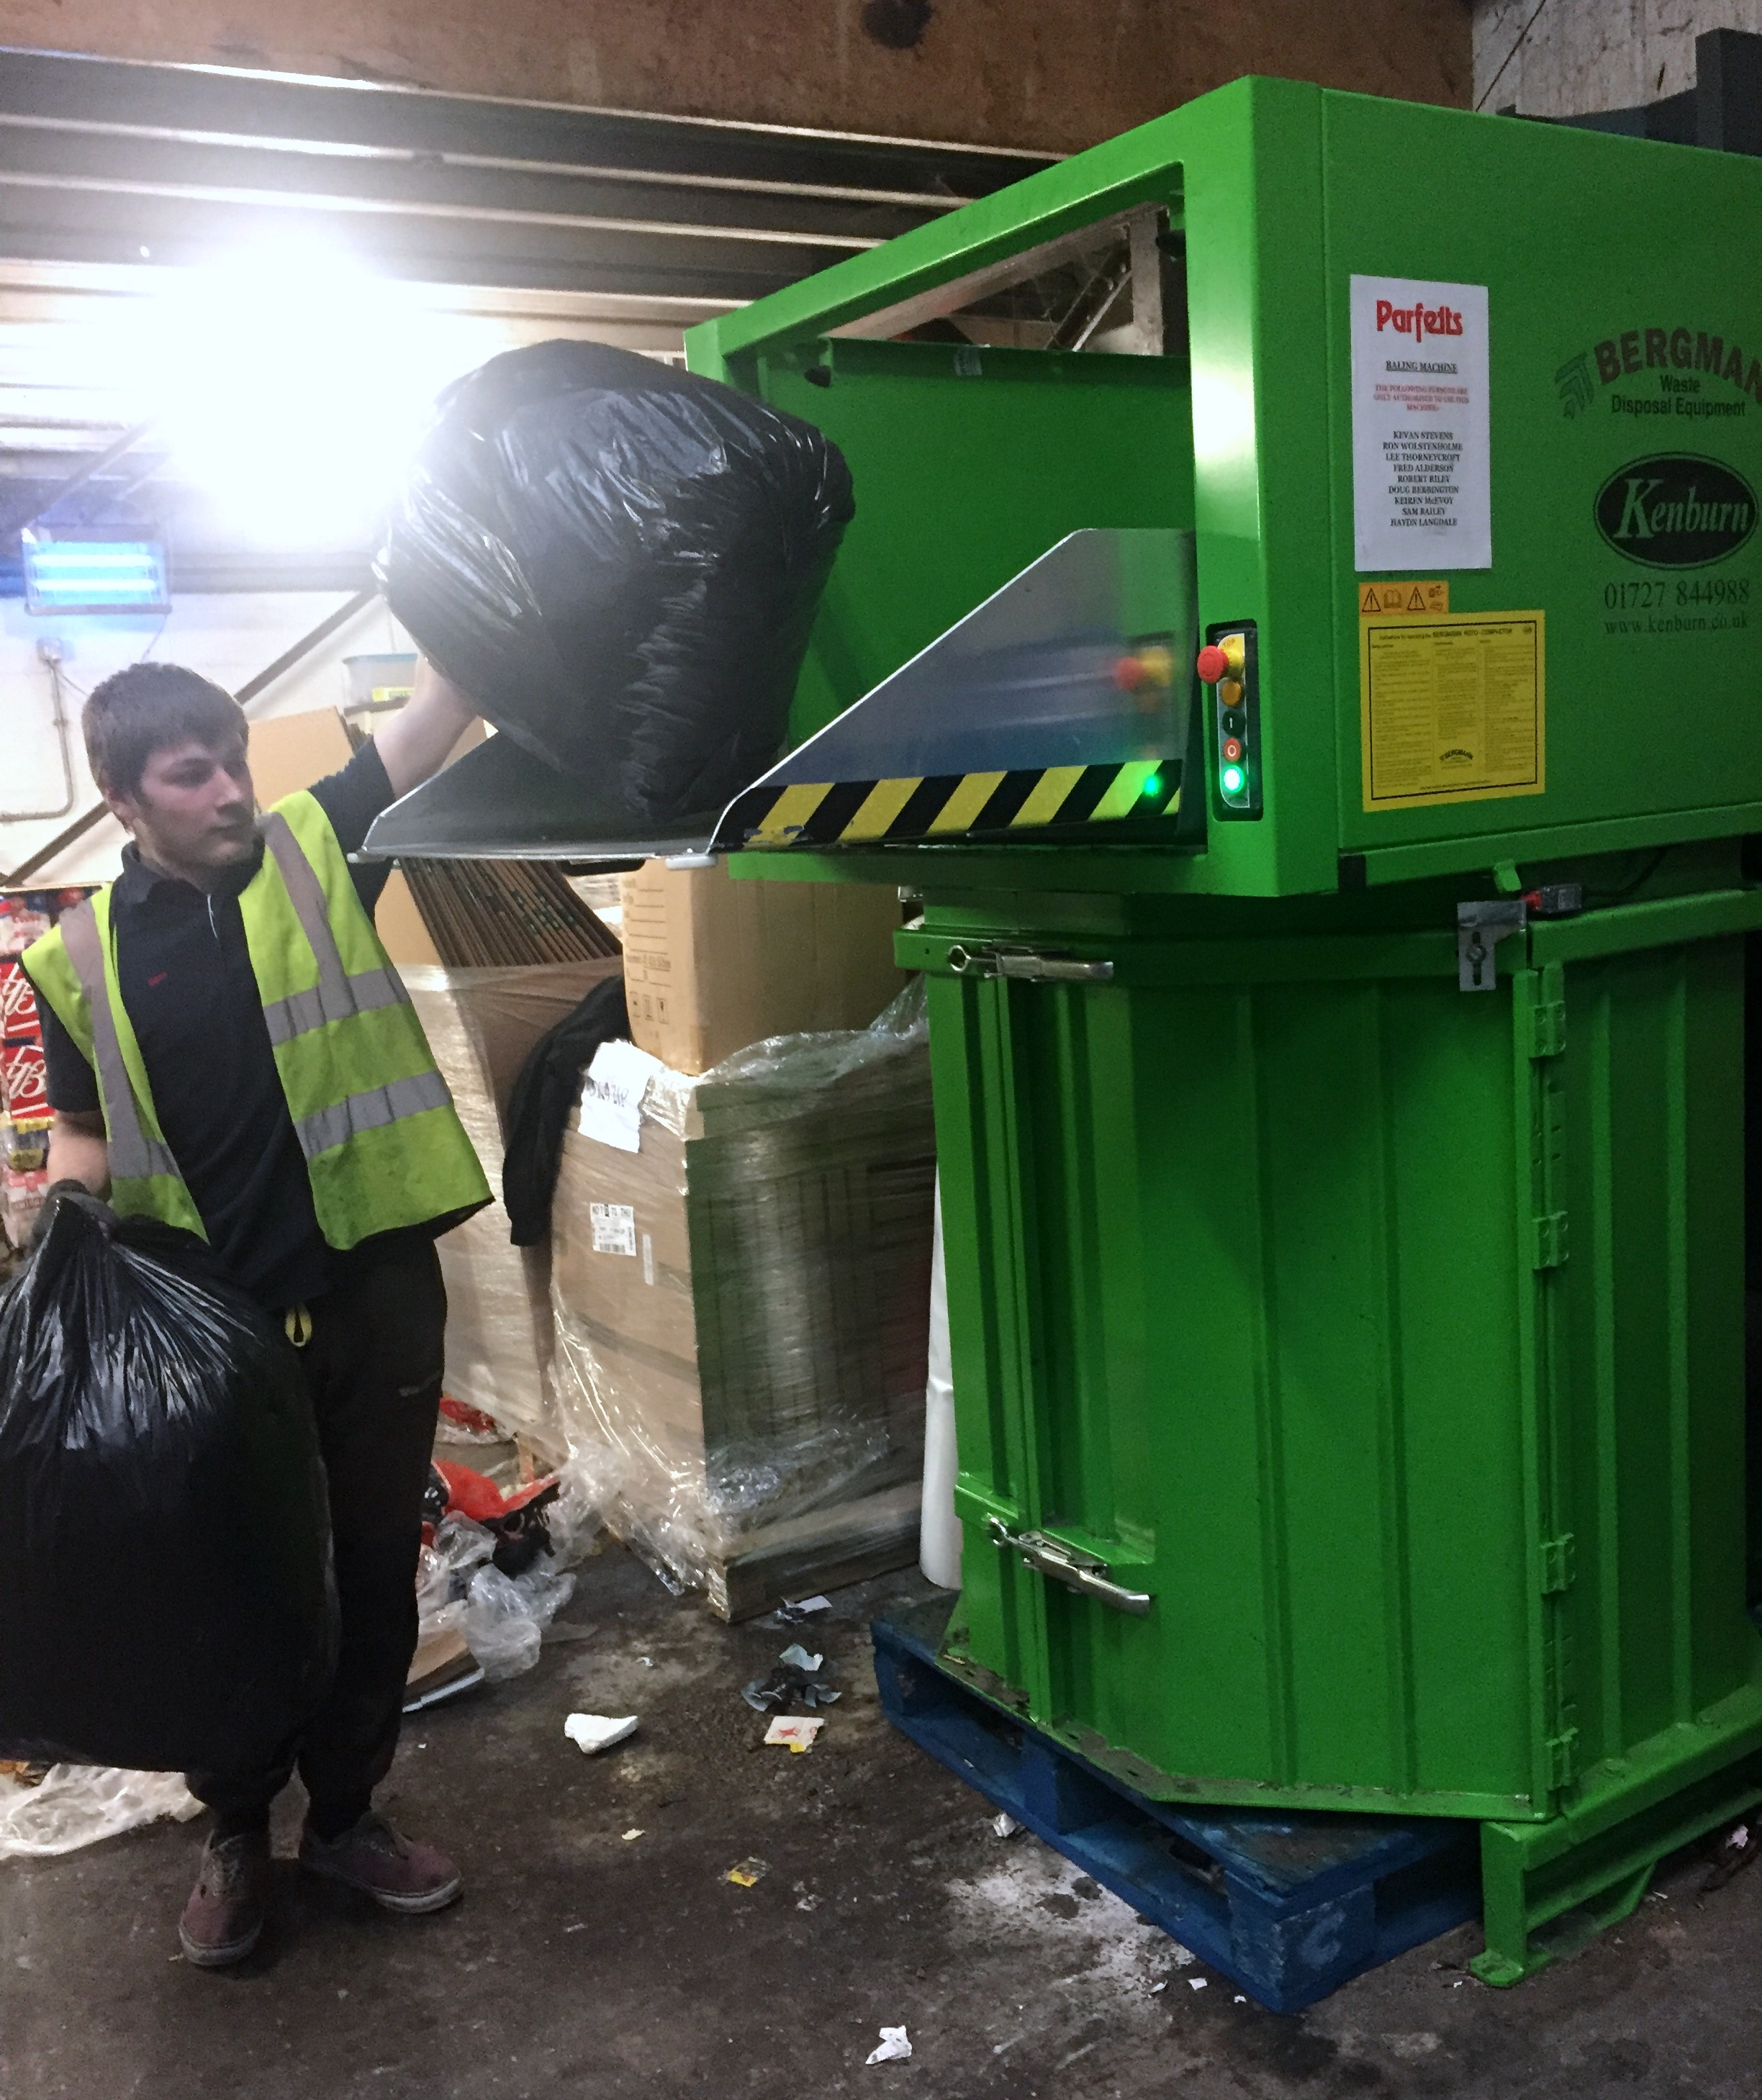 Compact general business waste with Bergmann roto compactor at A G Parfett - Kenburn